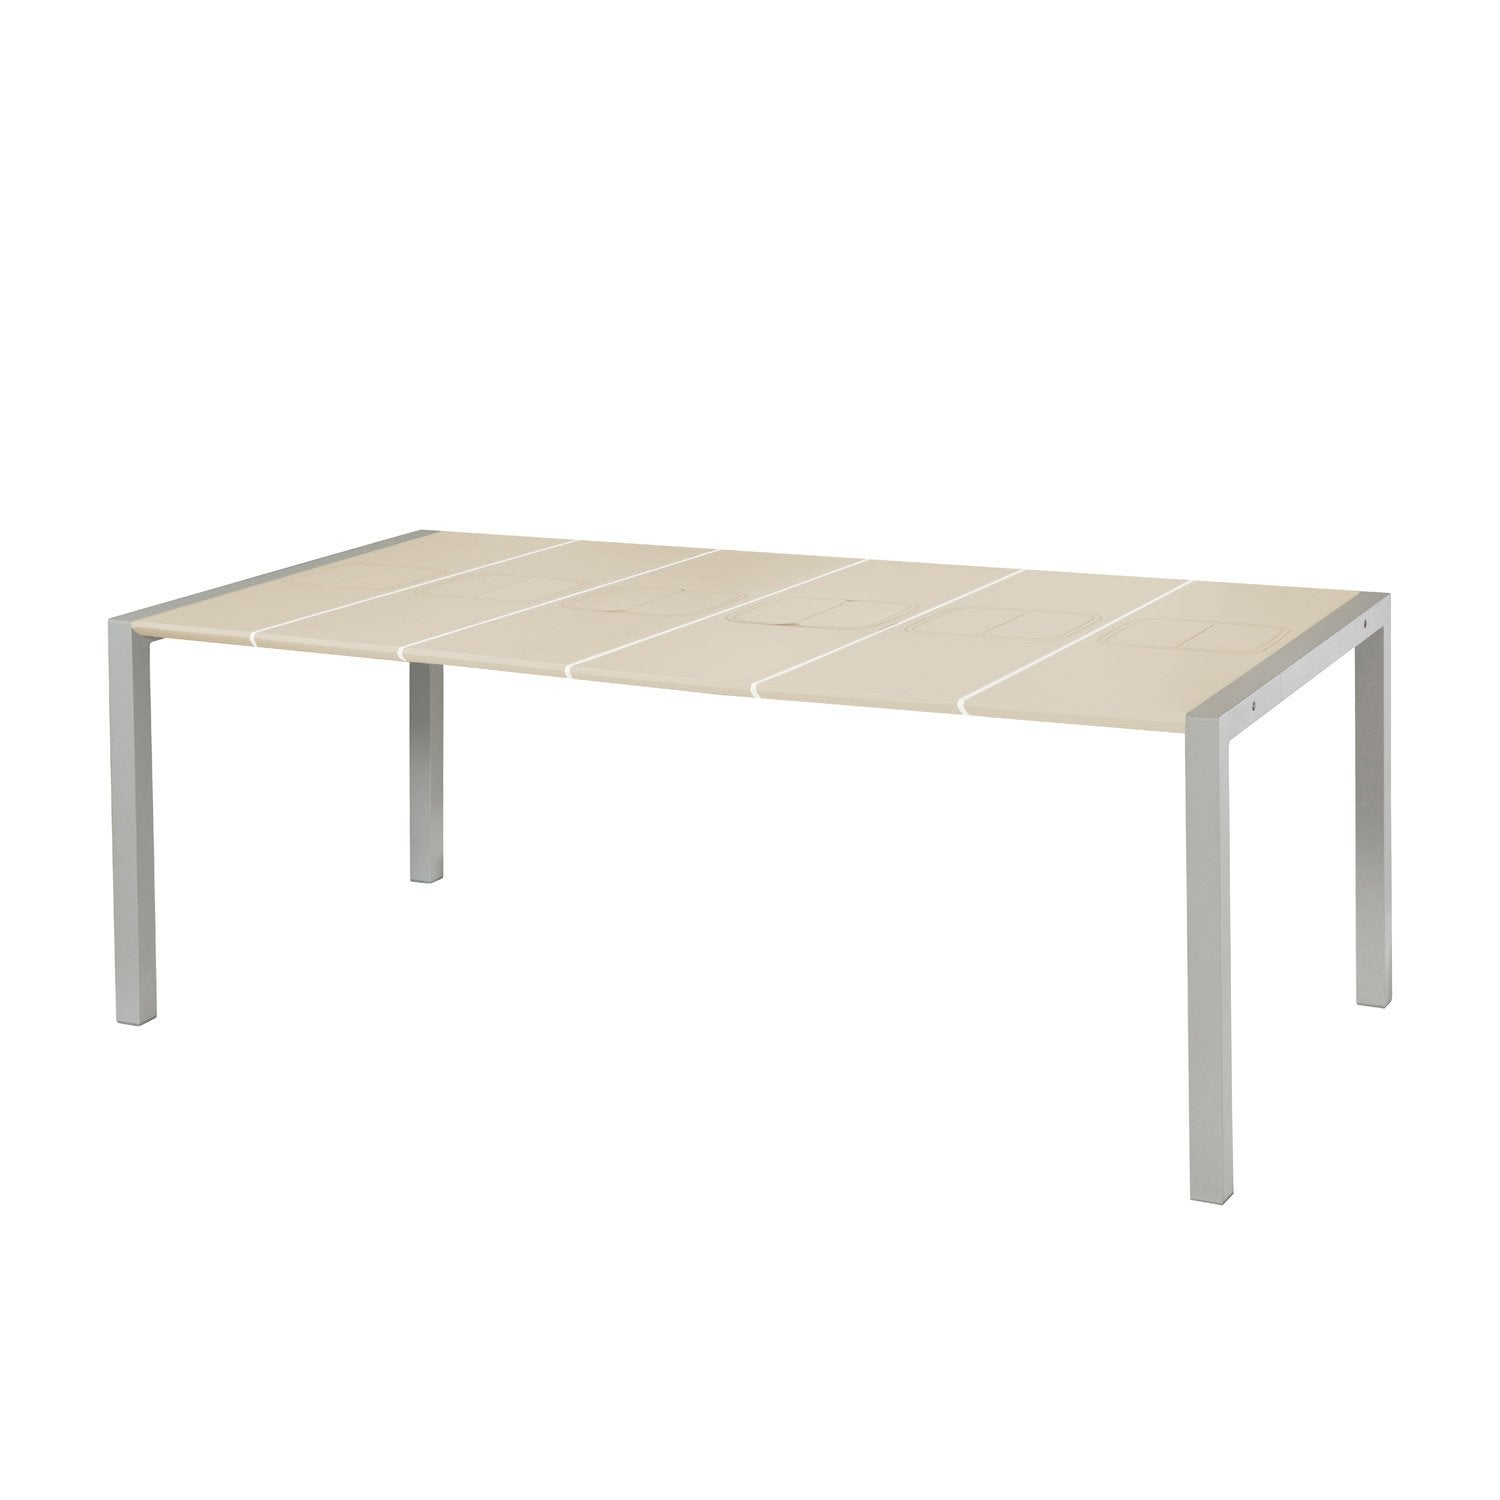 Table Pliante Leroy Merlin Table De Jardin City Green Burano